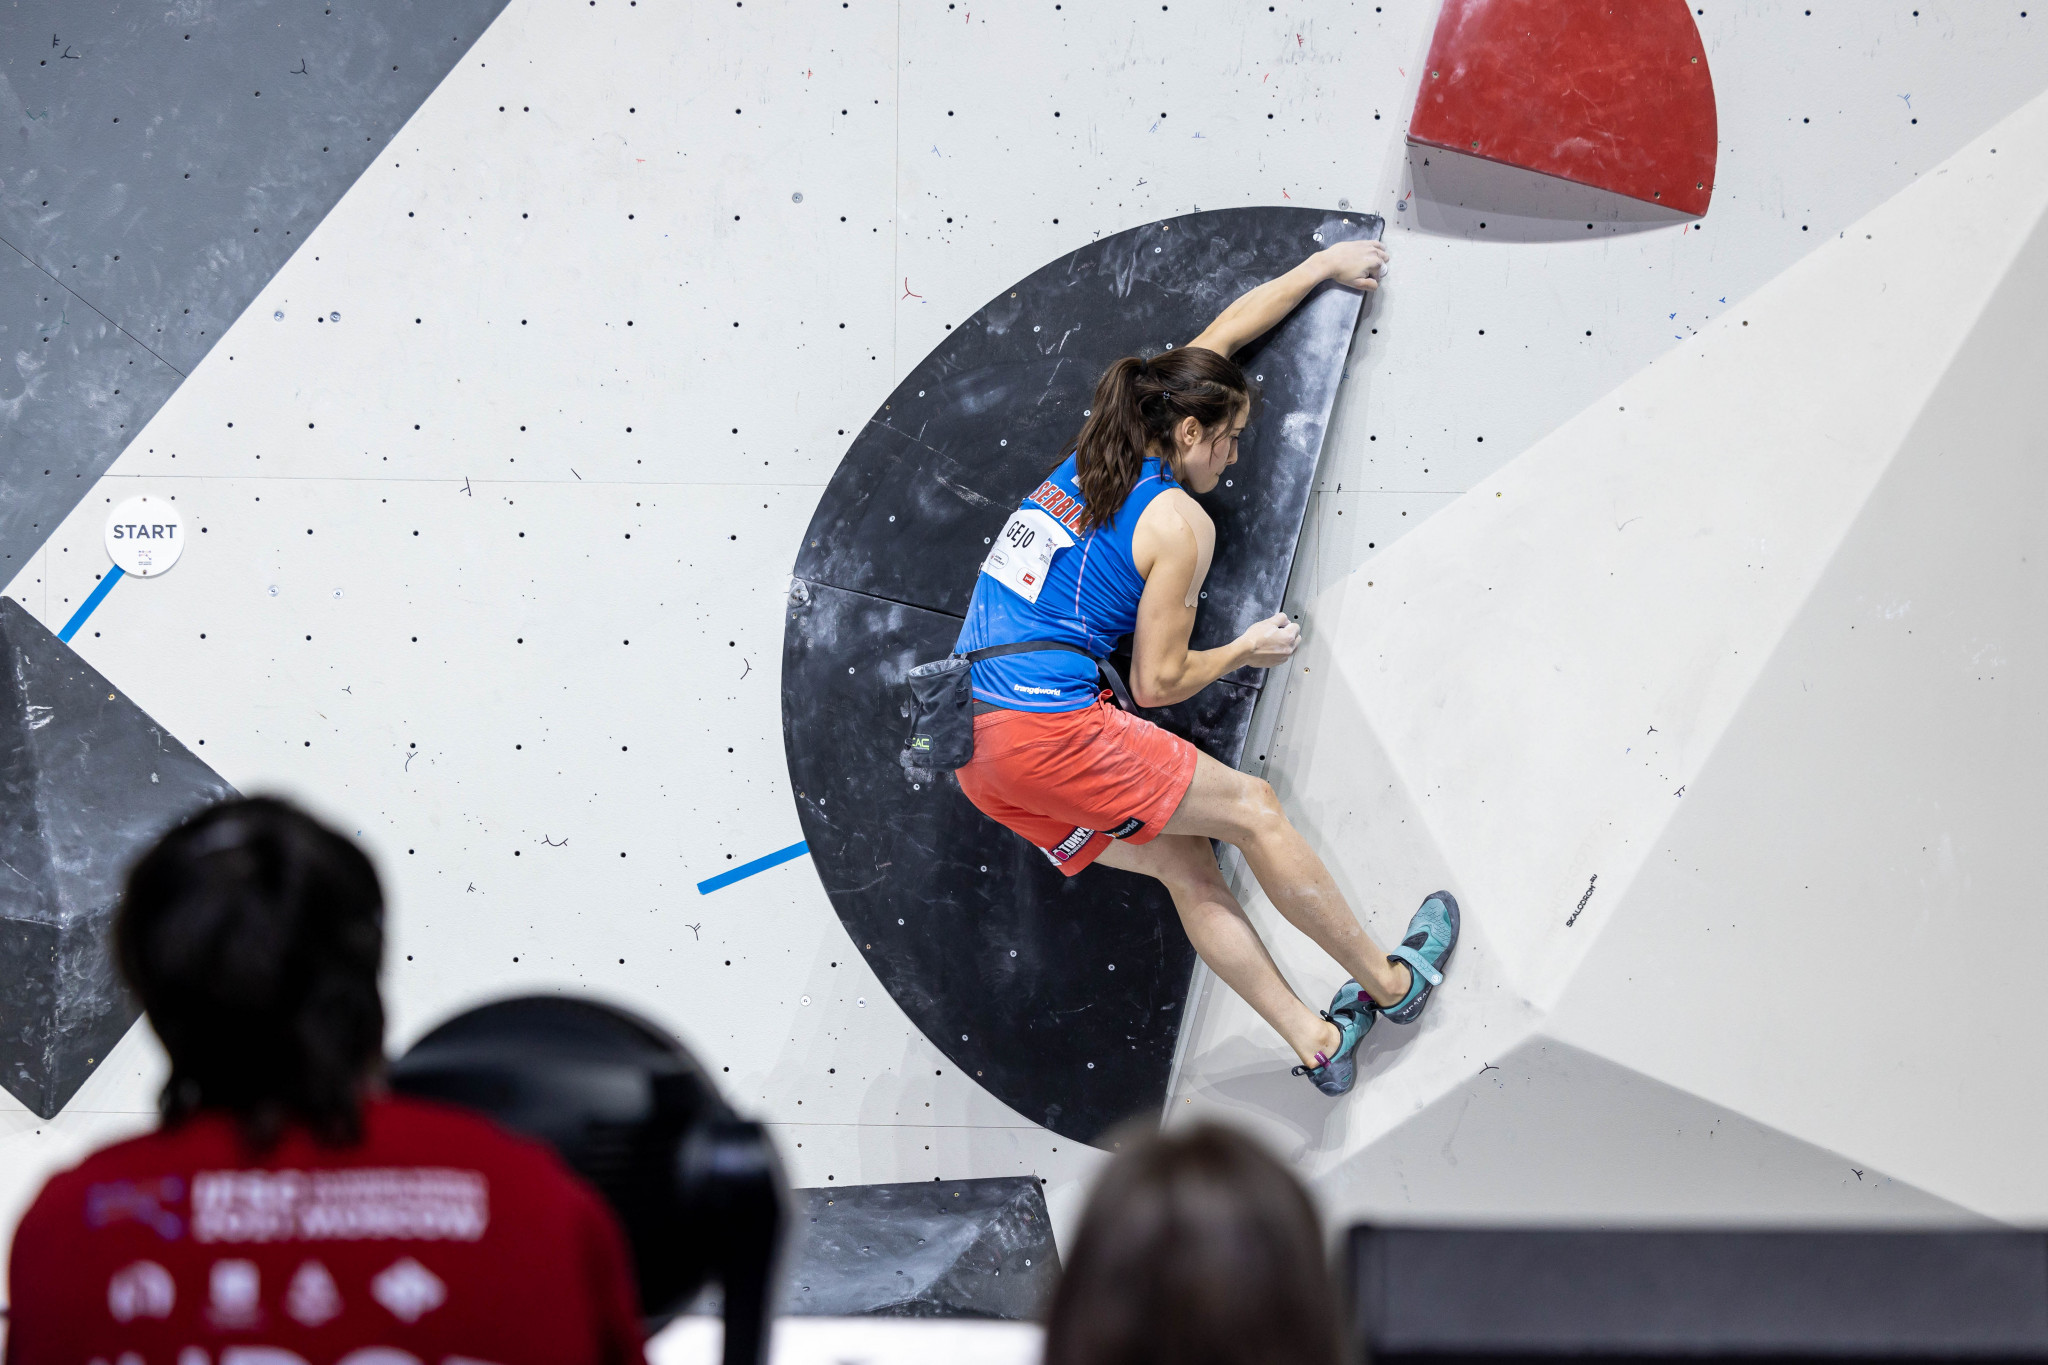 The IFSC Climbing World Championships are due to draw to a close tomorrow ©Jan Virt/IFSC